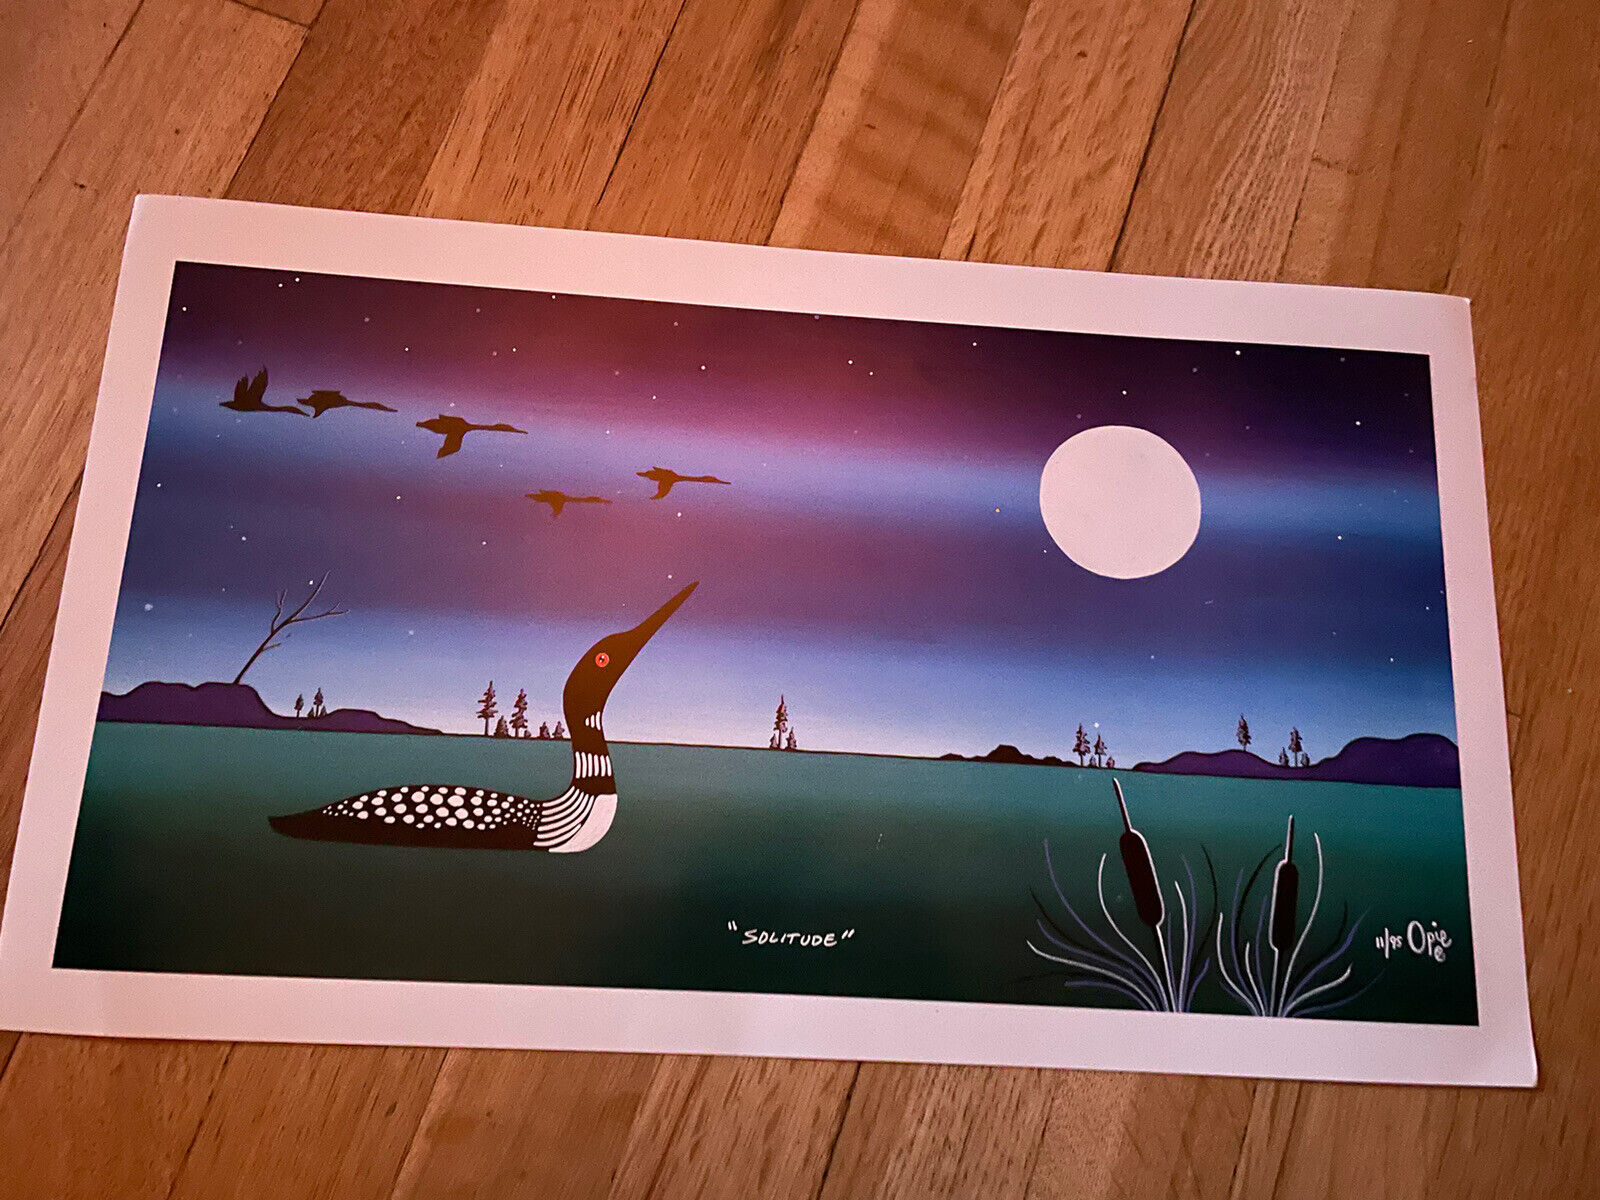 """Oppenheim Opie Signed Limited Edition Silkscreen """"Solitude"""" on eBay thumbnail"""